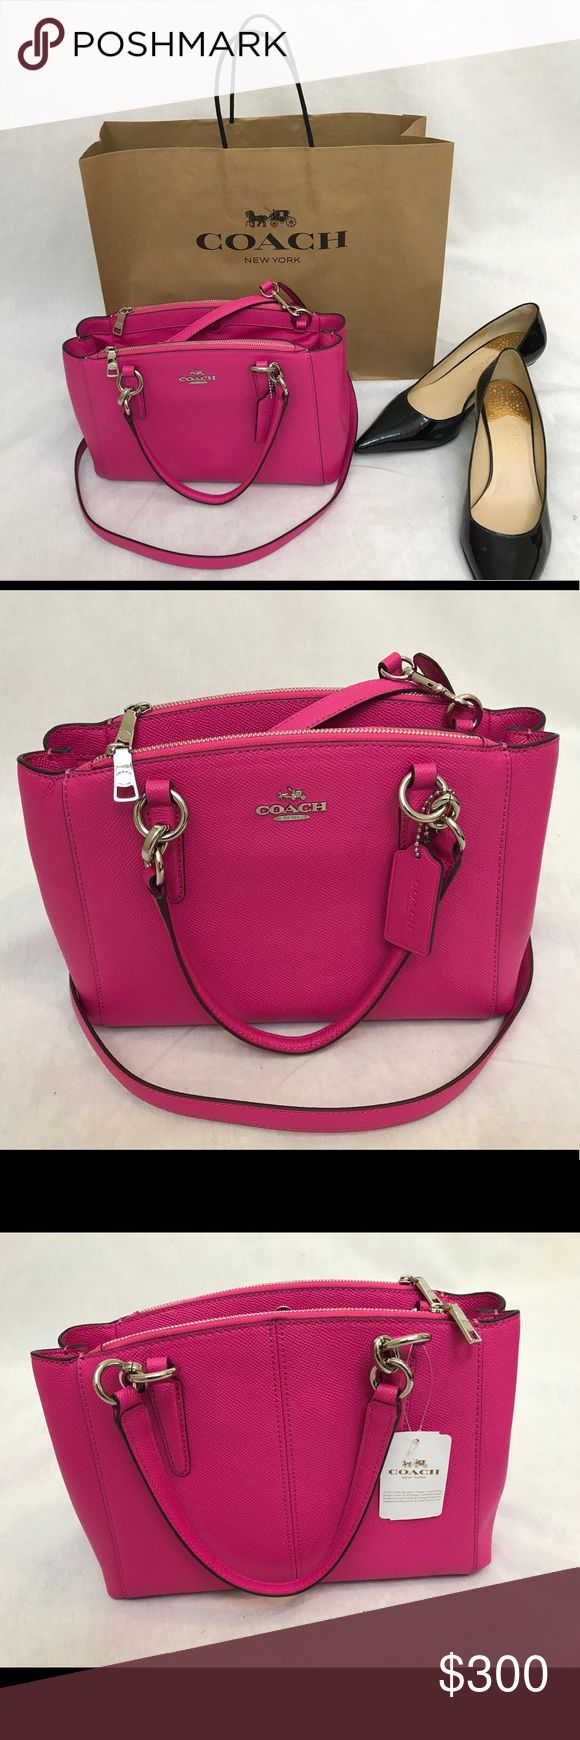 NWT Pink Coach Purse New with tags! Never worn beautiful pink purse with silver accents. Removable shoulder strap so handbag can be carried or worn over the shoulder. Includes care card to keep this handbag looking like new Coach Bags Shoulder Bags